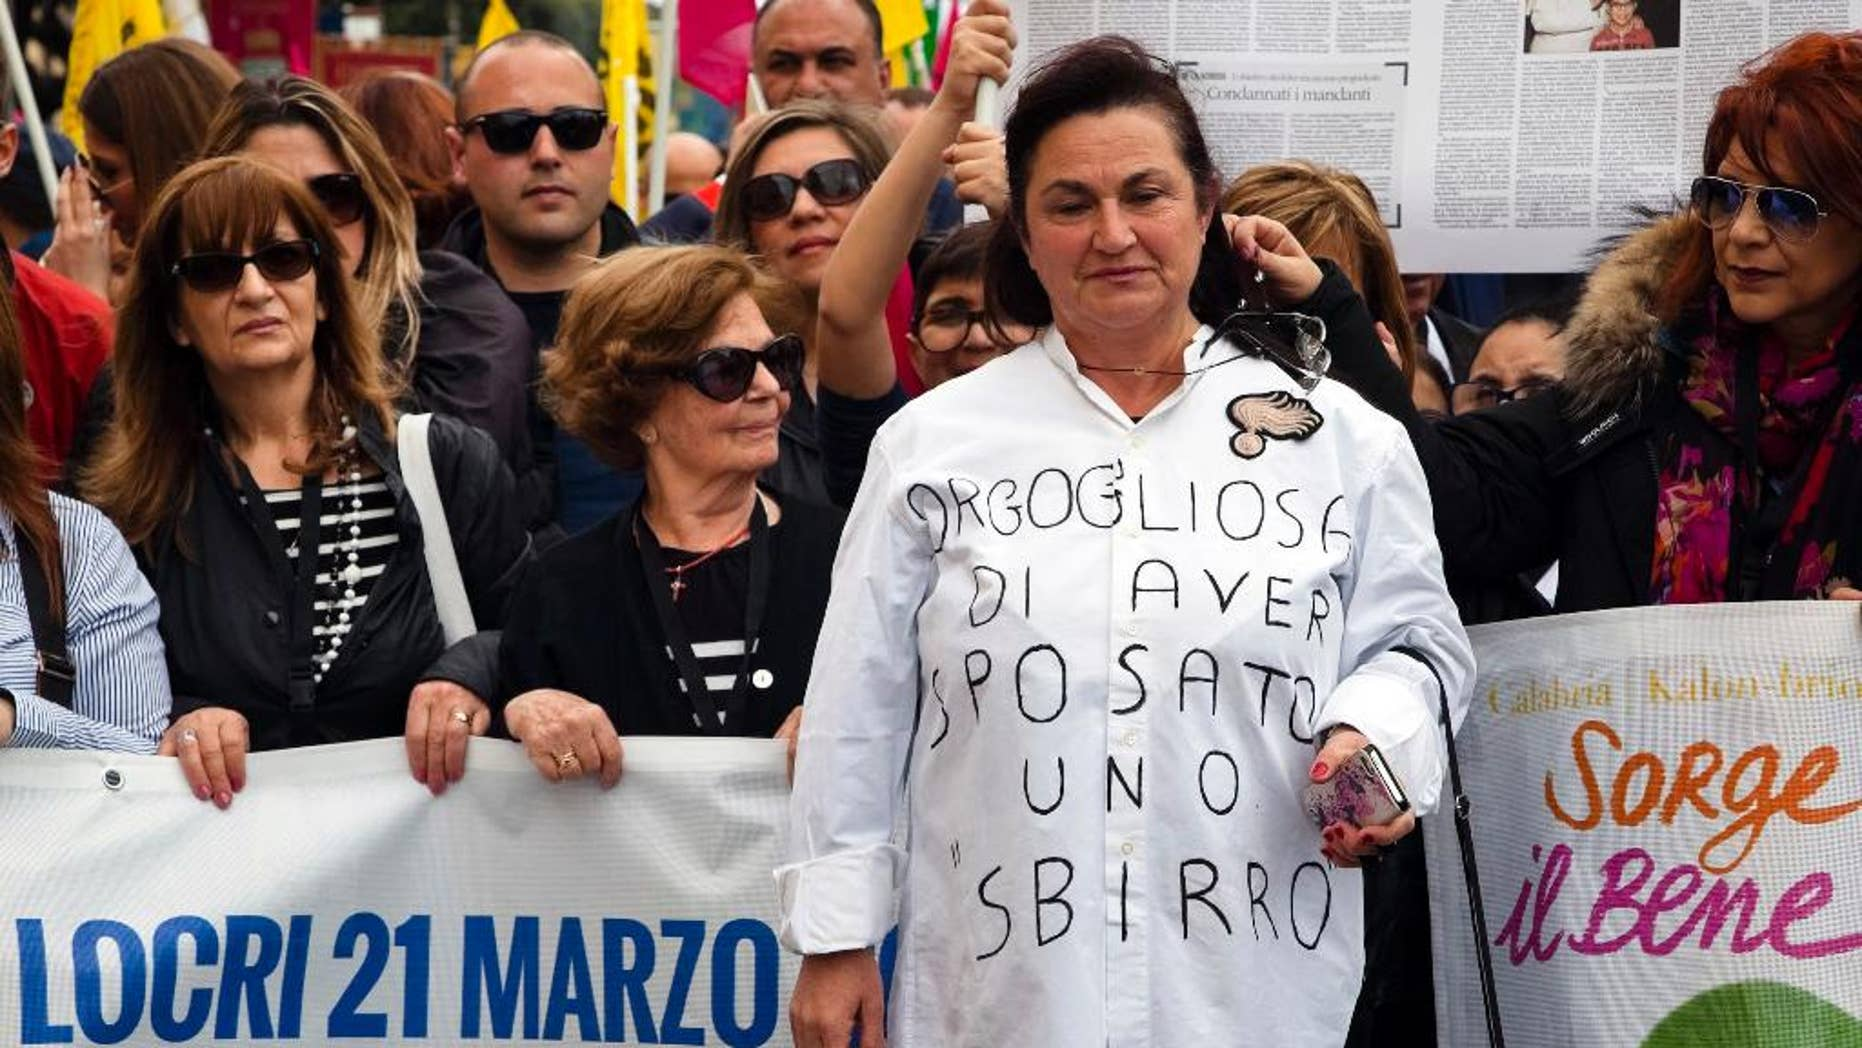 """Rosetta Marino widow of Antonino, a Carabiniere officer killed in 1990, wears a T-shirt reading """"I'm proud to have married a cop"""" during an anti mafia march in Locri,  a base of the 'ndrangheta crime syndicate in Reggio Calabria, Southern Italy, Tuesday, March 21, 2017. On the eve of Tuesday's protest, vandals scrawled graffiti in the mafia stronghold of Locri calling Don Luigi Ciotti, a leading anti-mafia crusader, a cop and demanding """"More work, fewer cops."""" (Marco Costantino/ANSA via AP)"""